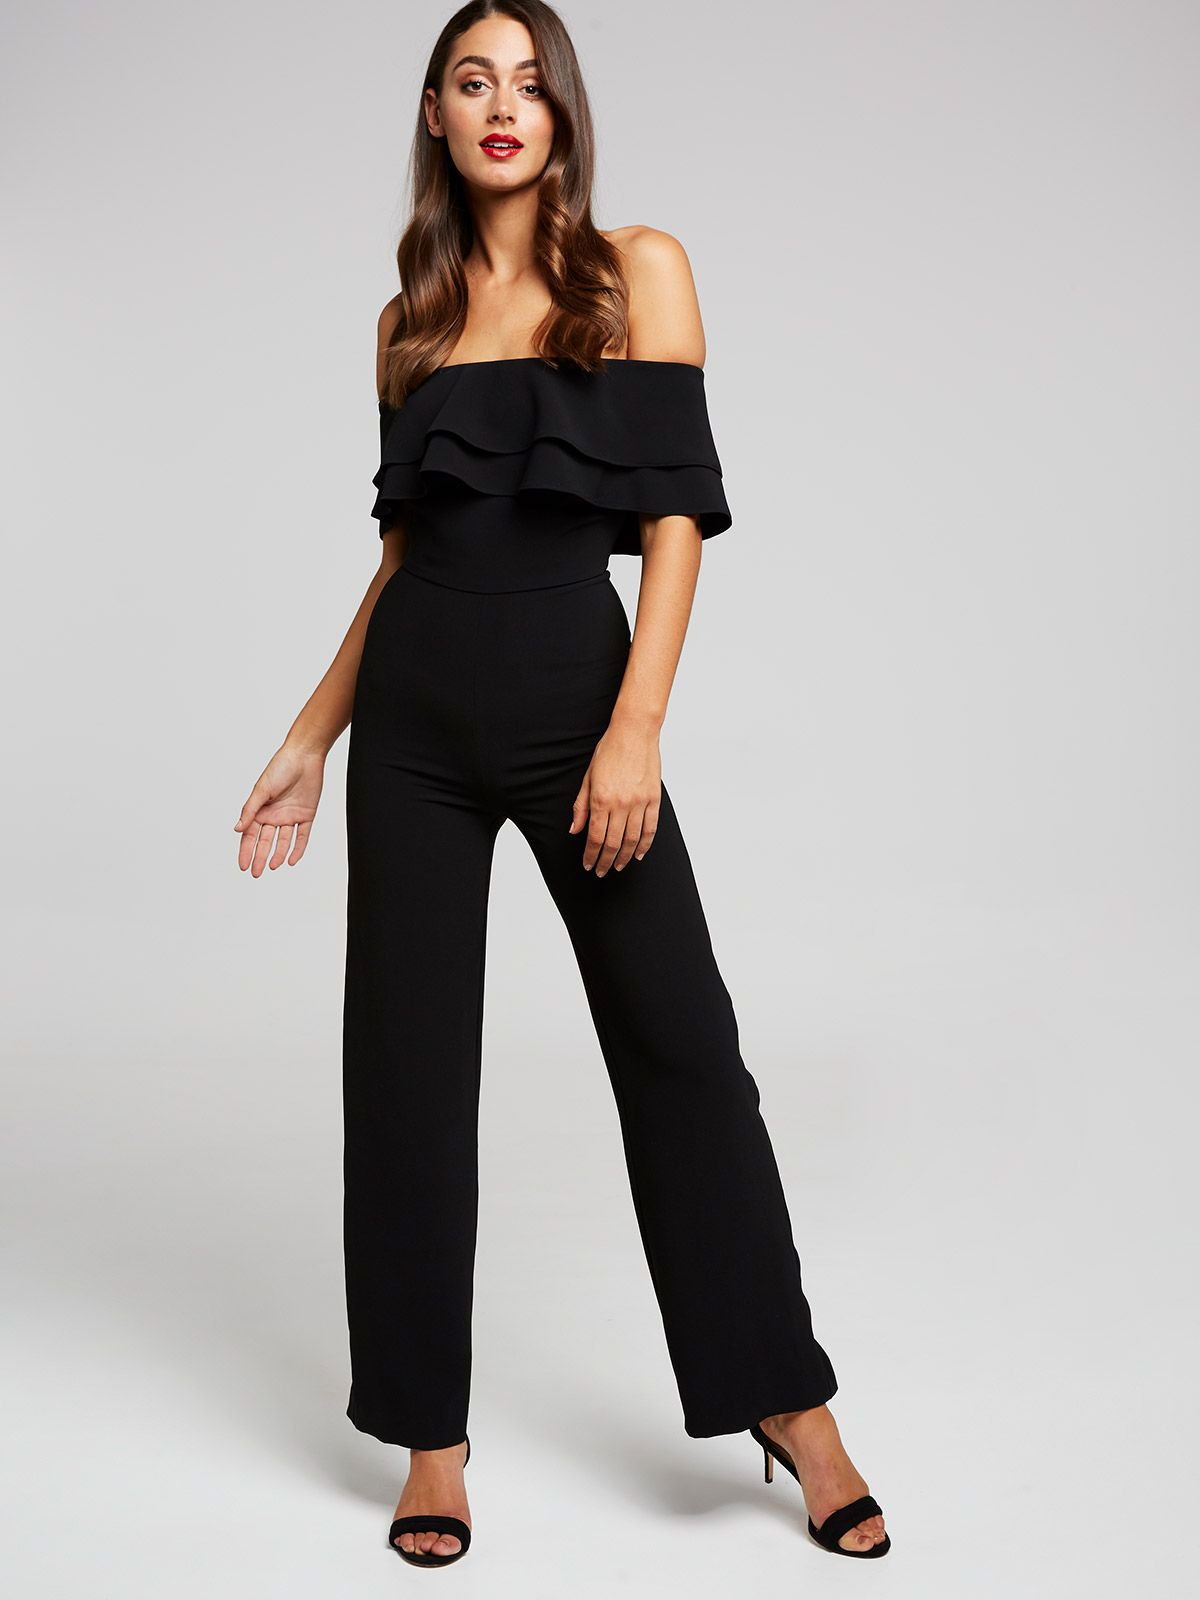 21b4a2eb9b3 Image for Natalia Off Shoulder Jumpsuit from Portmans